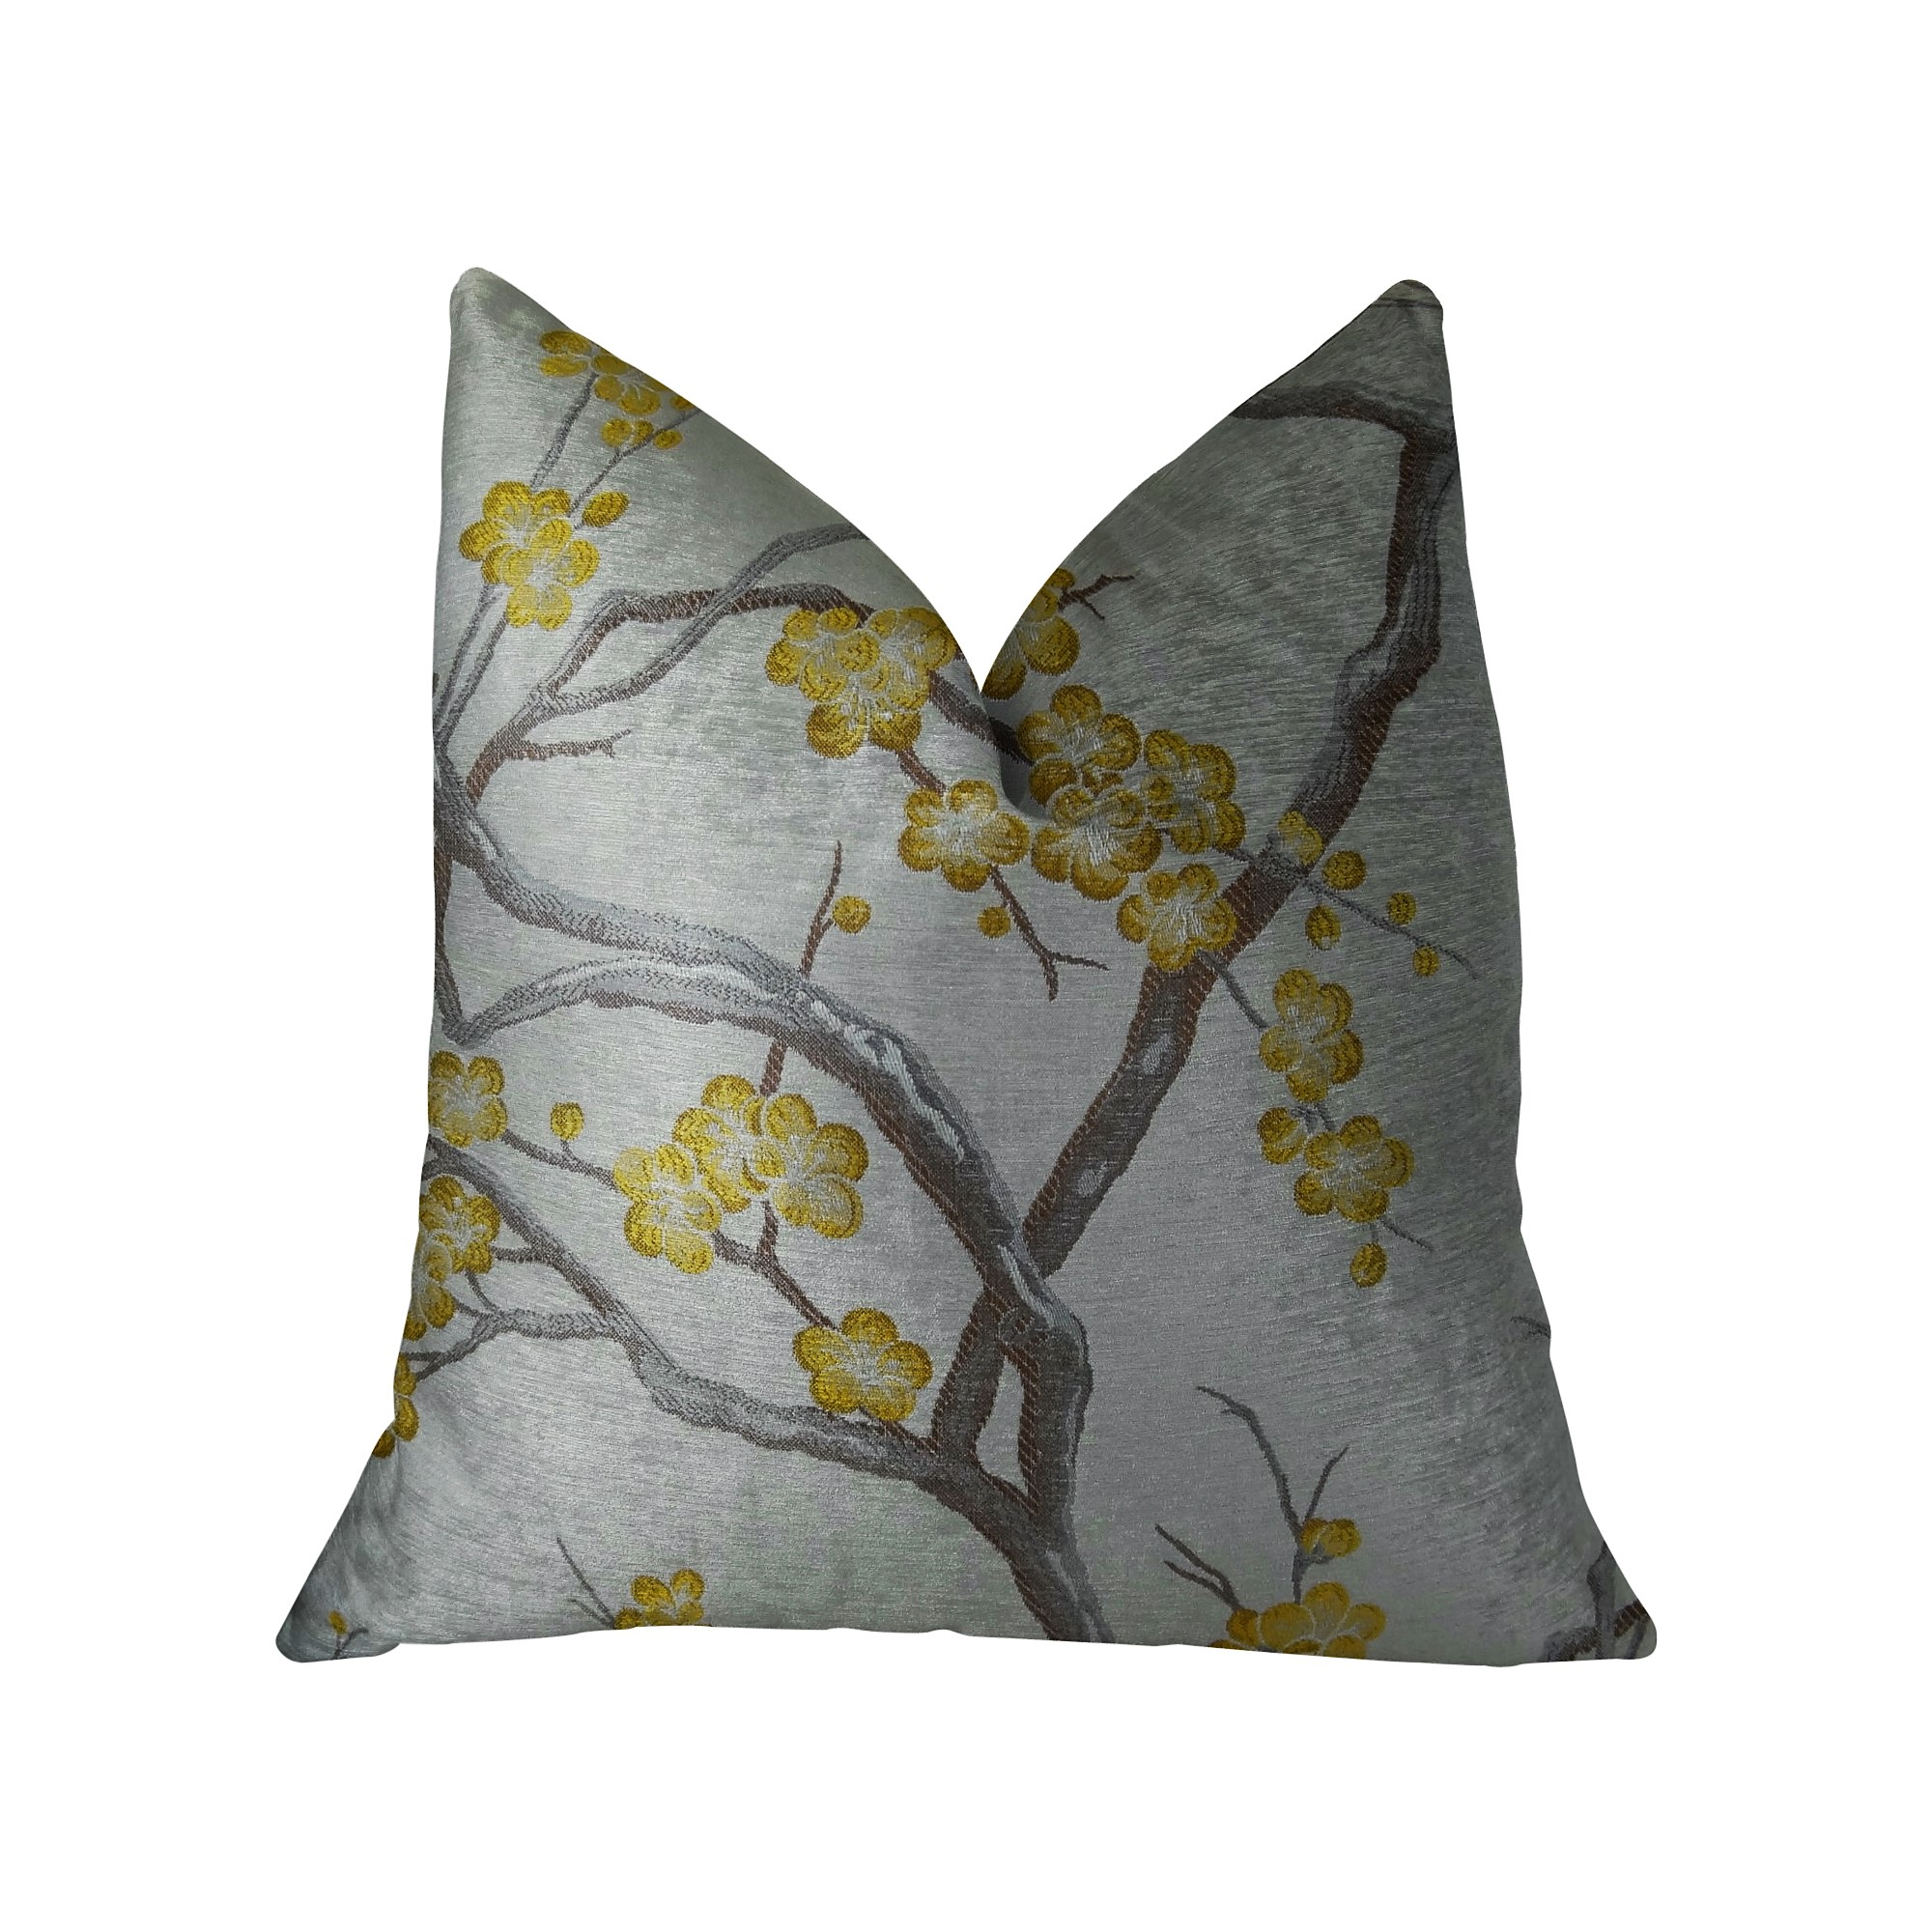 Plutus Vesoul Handmade Throw Pillow, Double Sided